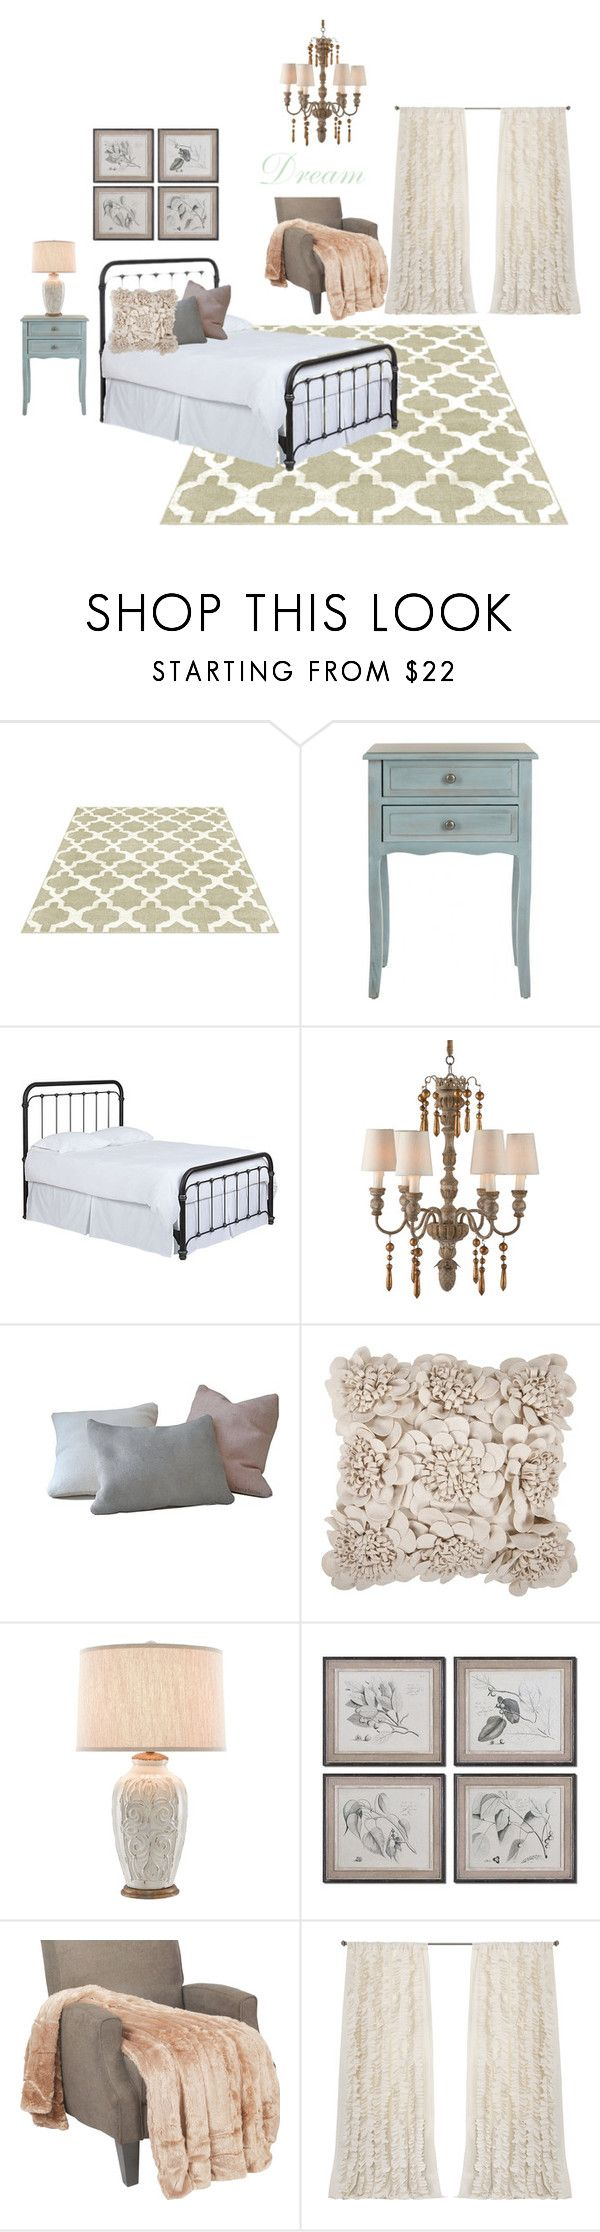 """""""Country dream"""" by rnegyongyi on Polyvore featuring interior, interiors, interior design, home, home decor, interior decorating, Safavieh, Aidan Gray, Surya and country"""